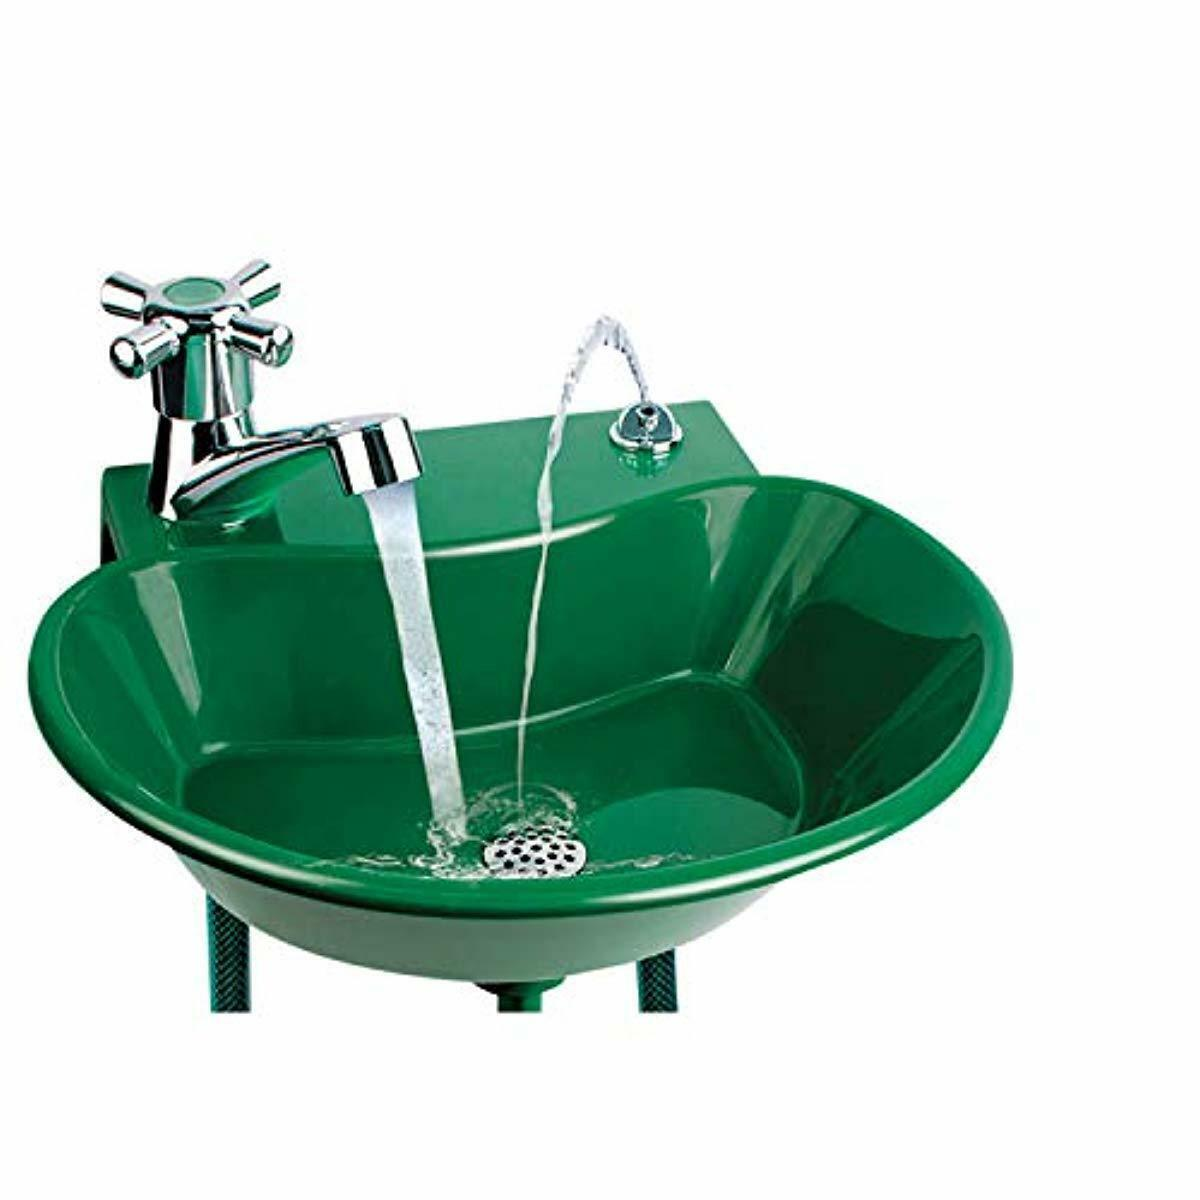 2-in-1 Outdoor Water Fountain and Faucet Plastic and PVC ...